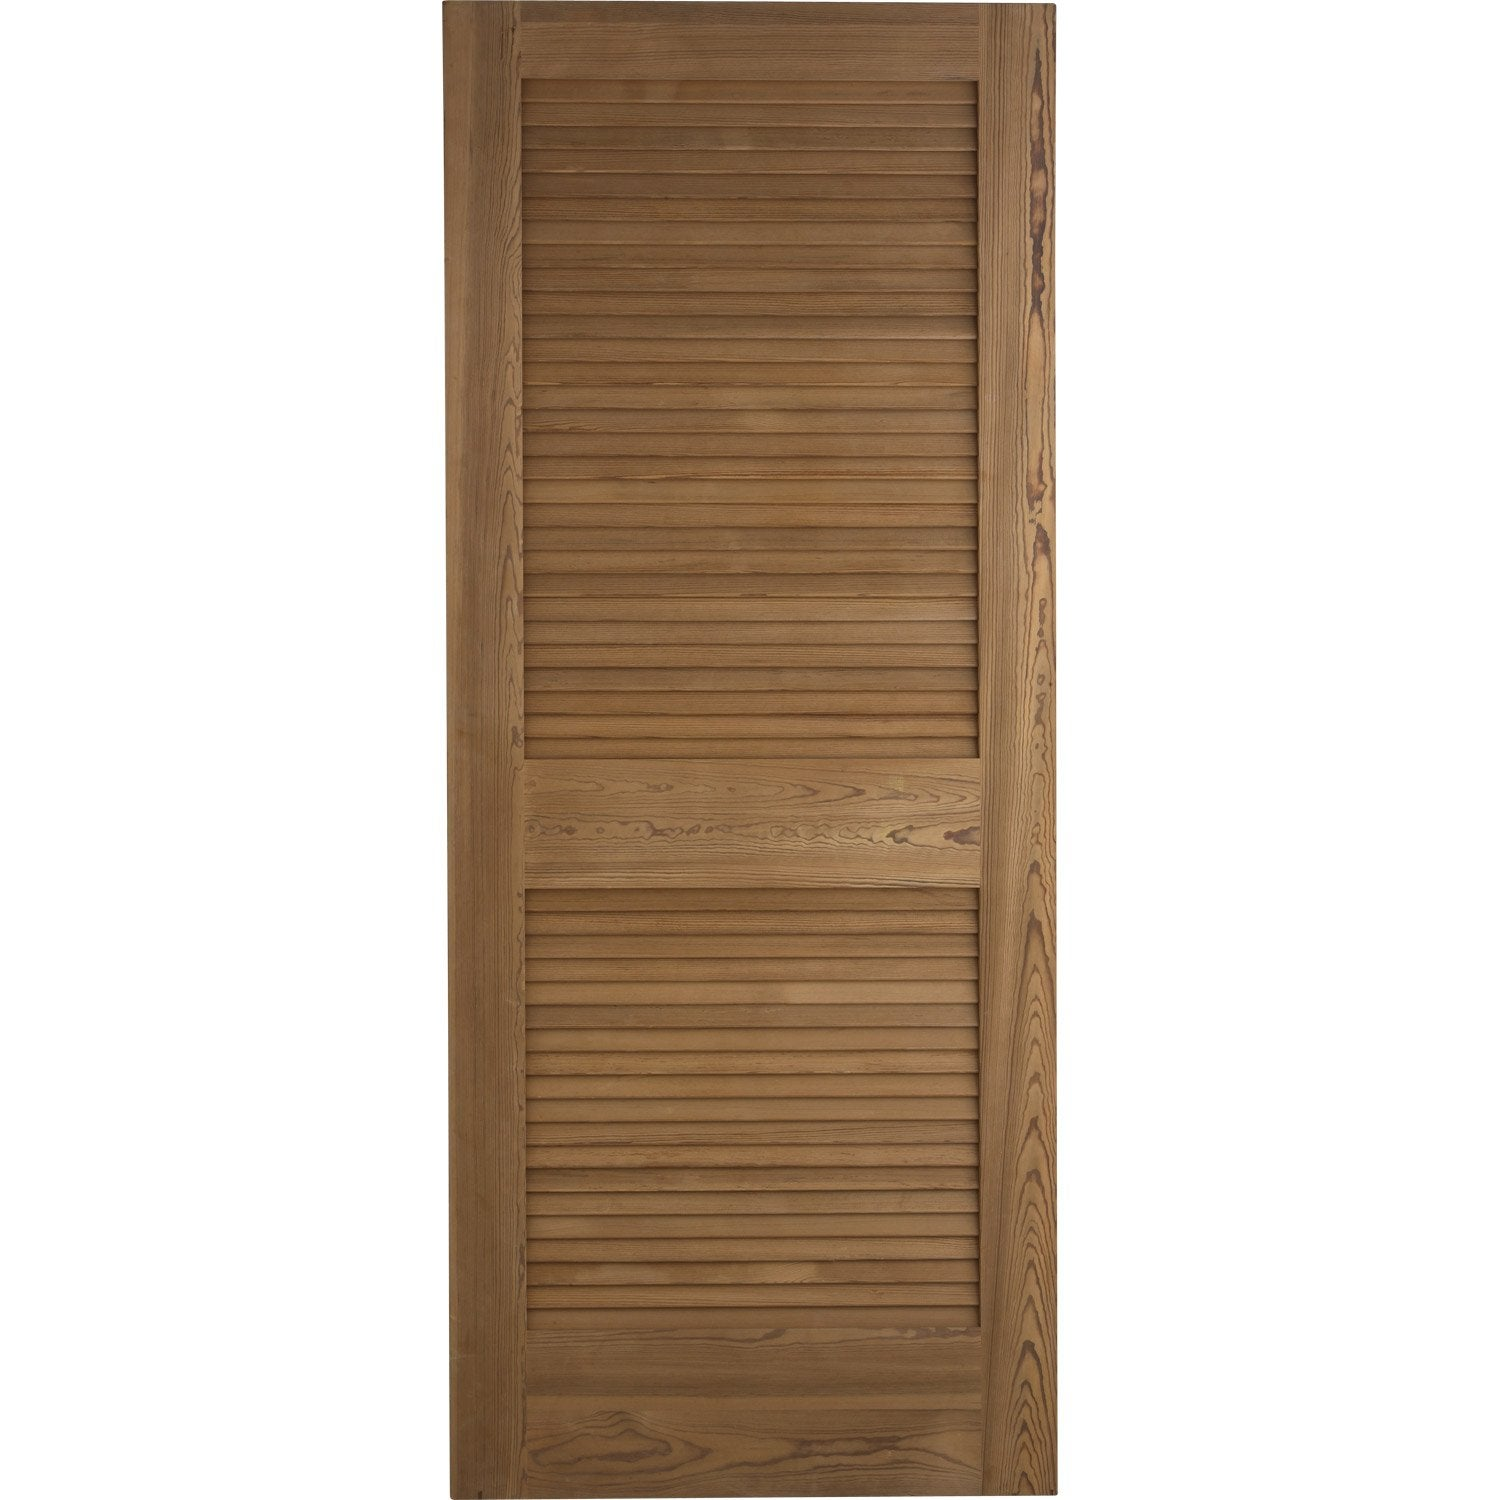 Porte coulissante pin plaqu marron java artens 204 x 73 for Porte exterieur de jardin leroy merlin